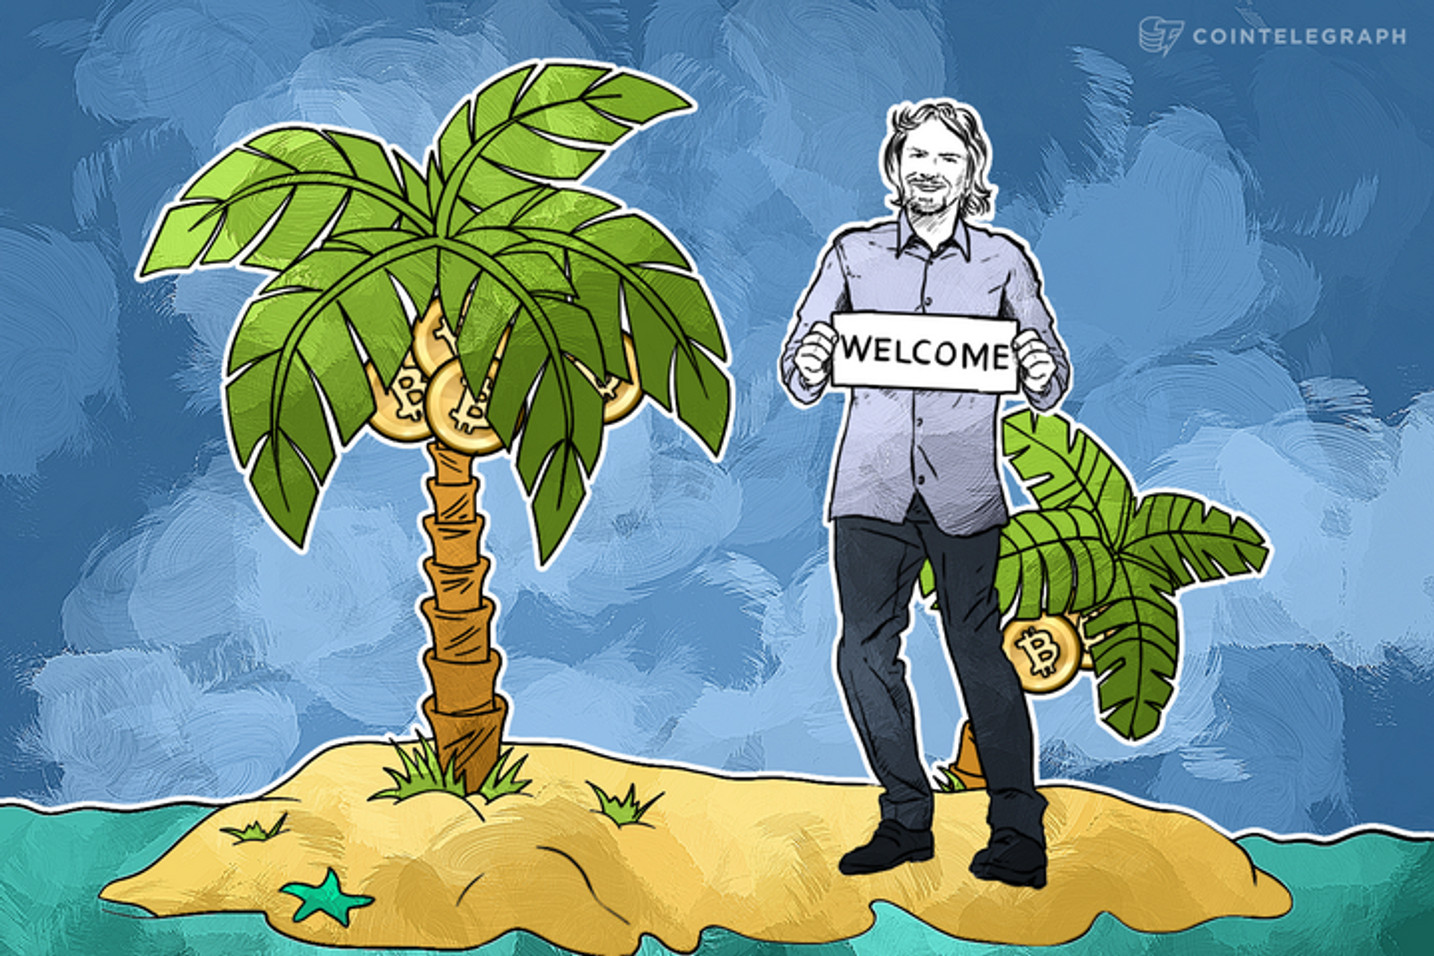 LazyPay Enters Virgin Mobile's 'Pitch to Rich 2015' as the Only Bitcoin Startup